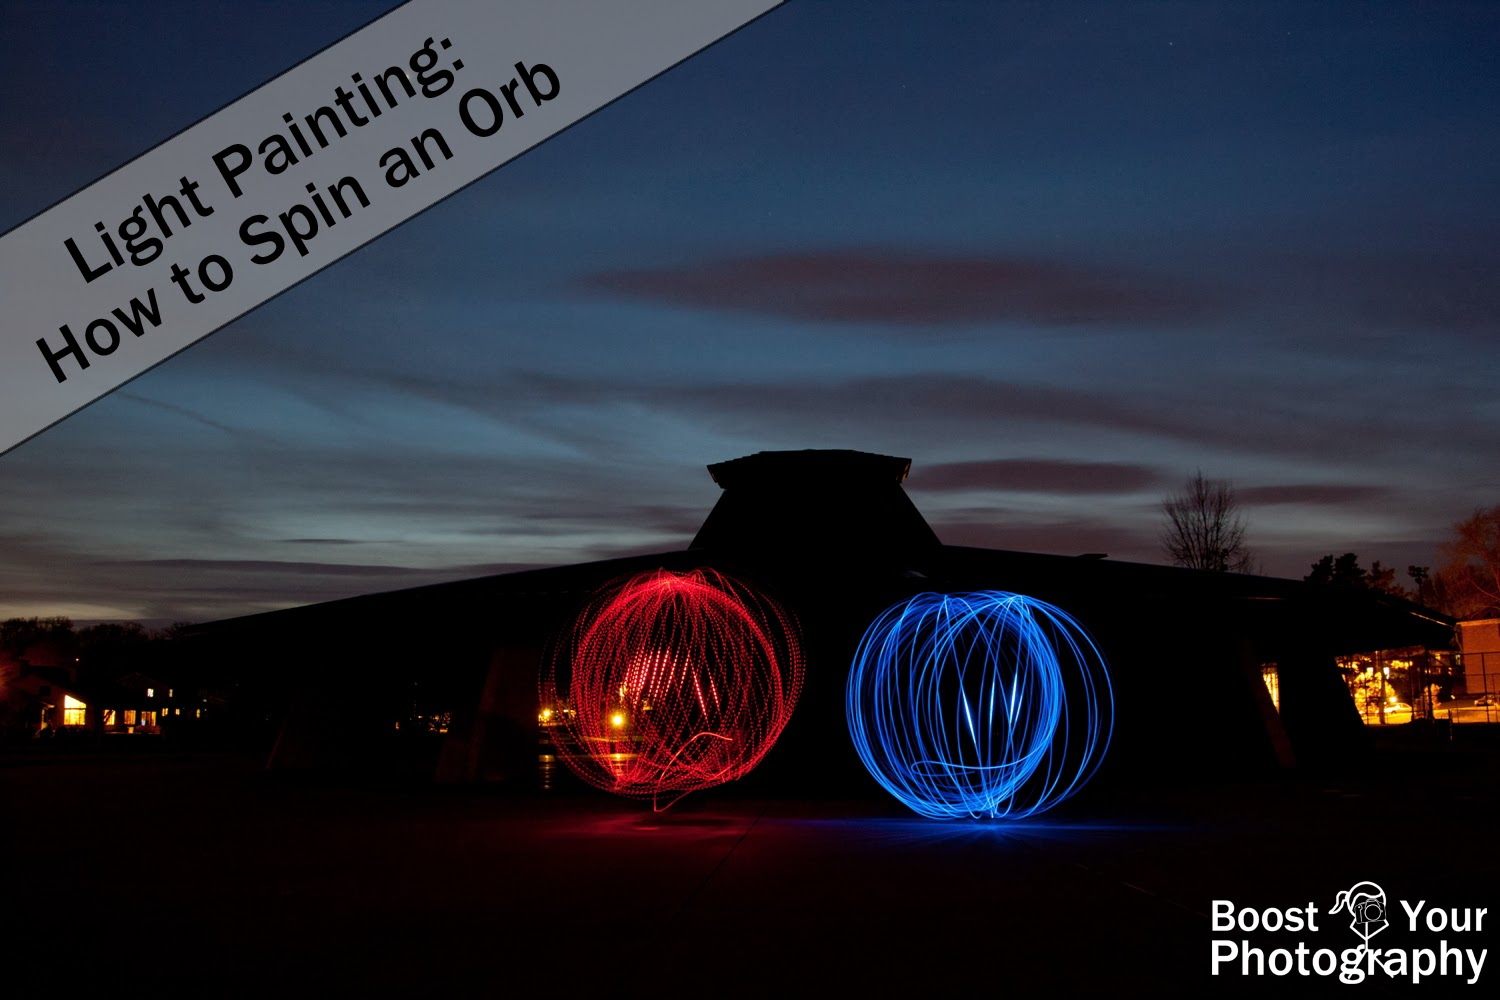 http://www.boostyourphotography.com/2013/06/light-painting-how-to-spin-orb.html